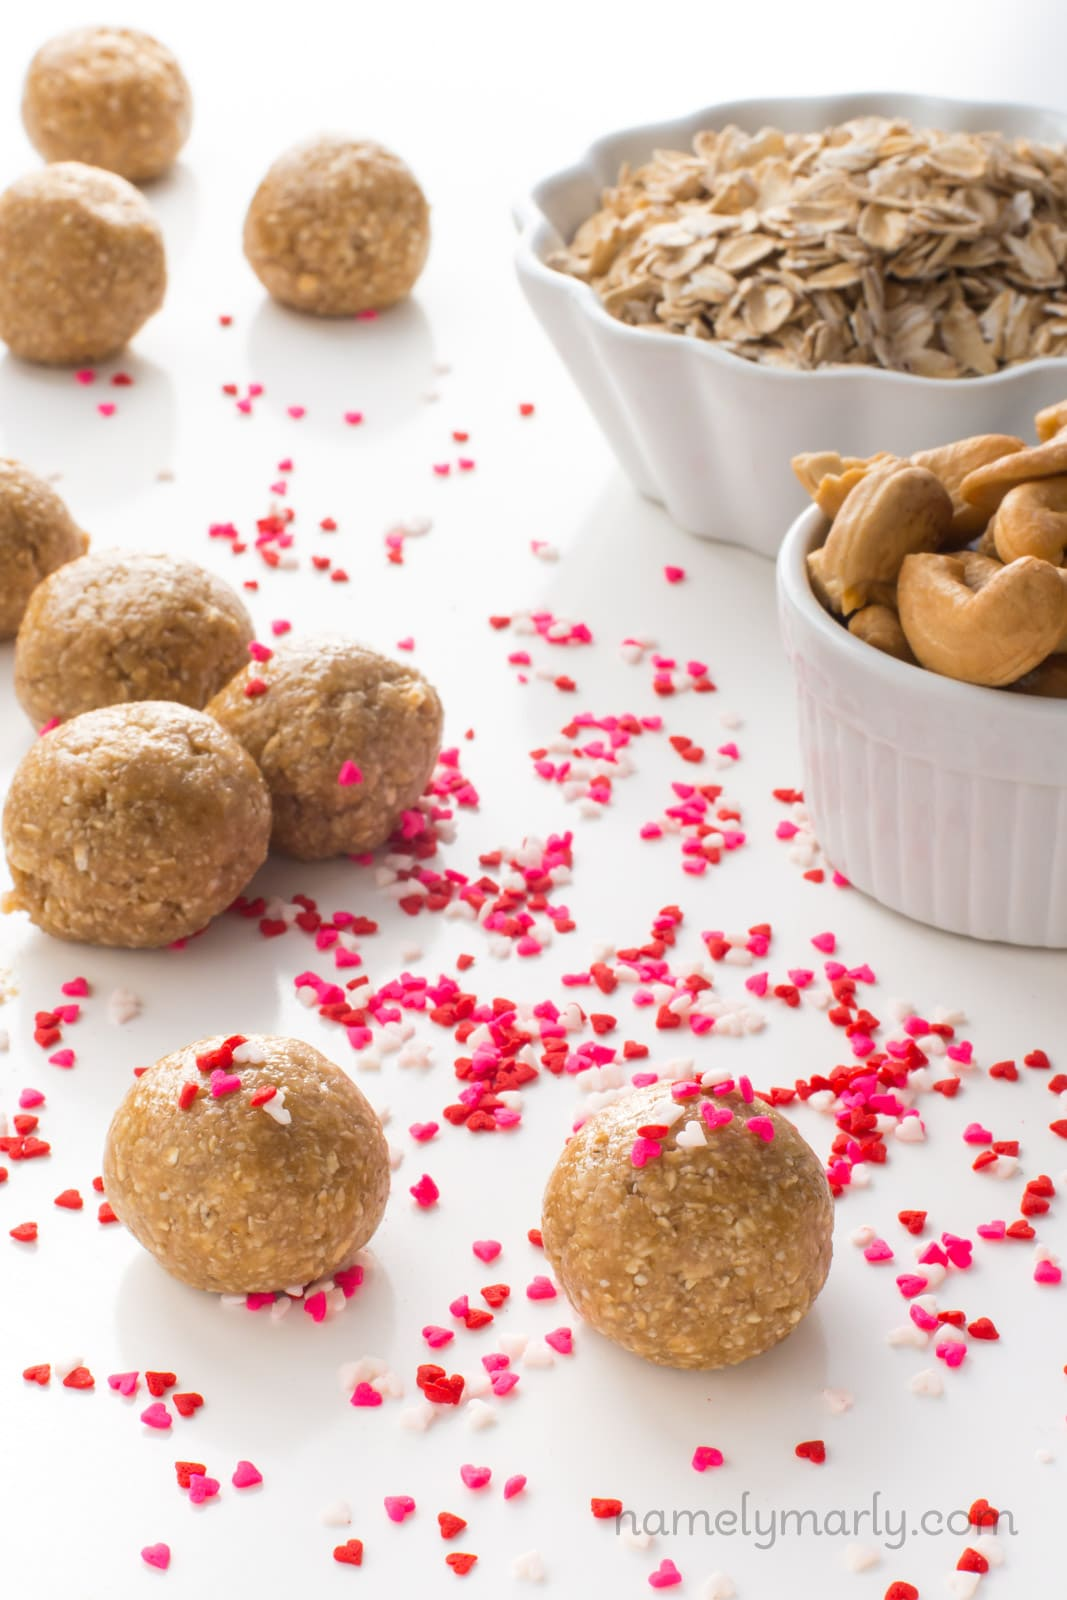 Several sugar cookie energy bites sit on a table. There are pink, red, and white heart-shaped sprinkles all around the table and on some of the energy bites. Beside them are two bowls, one with cashews and one with oatmeal.